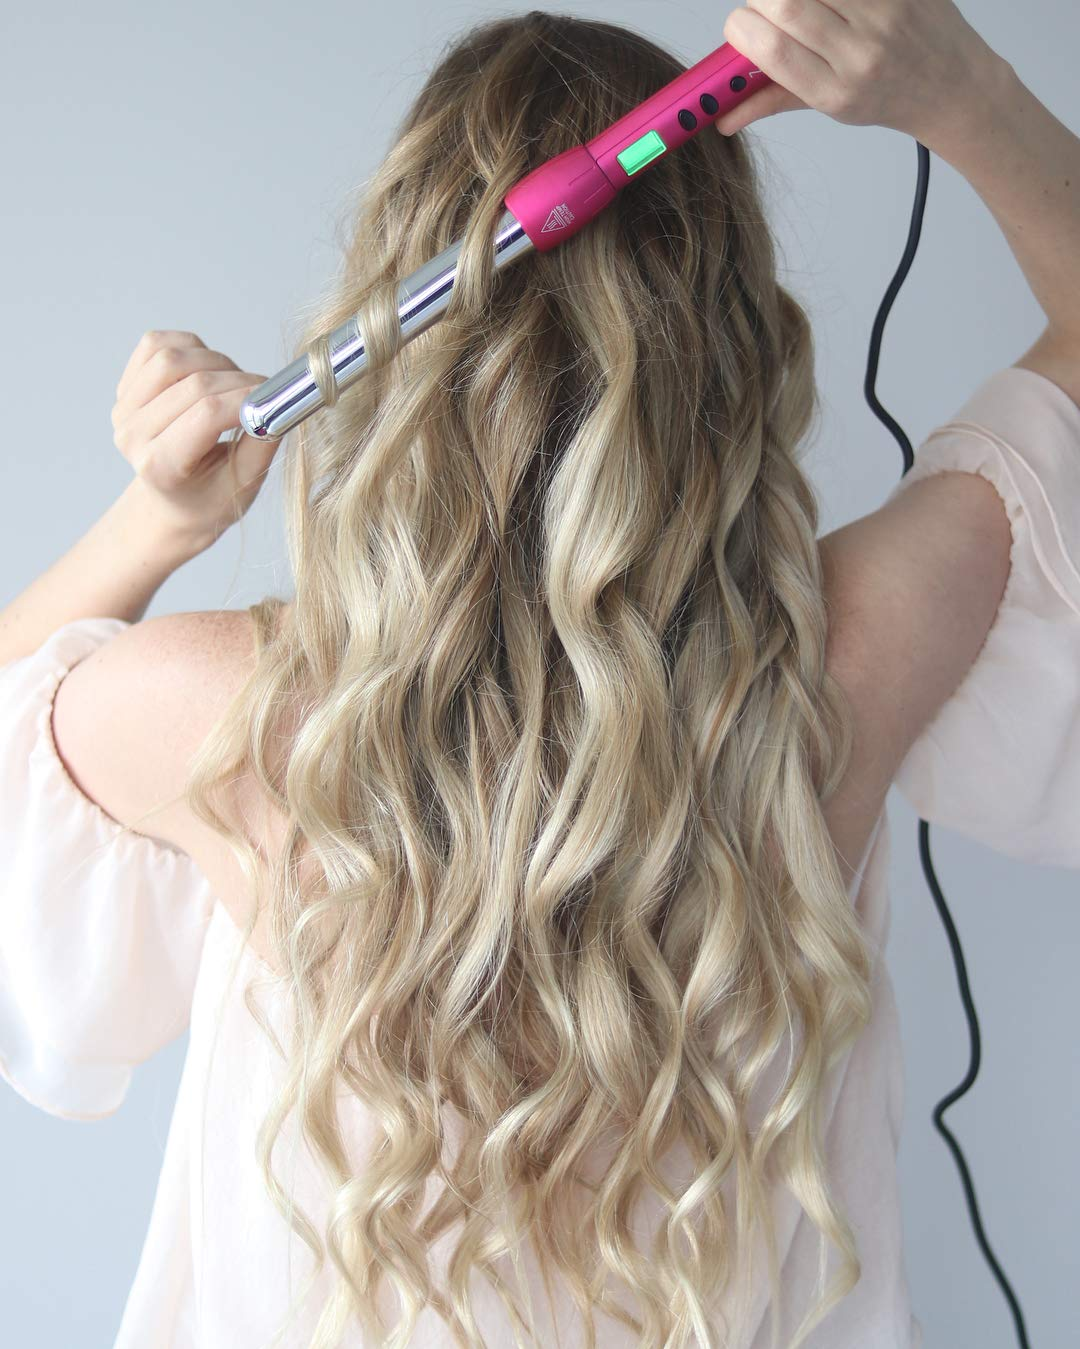 NuMe Magic Curling Wand by NuMe